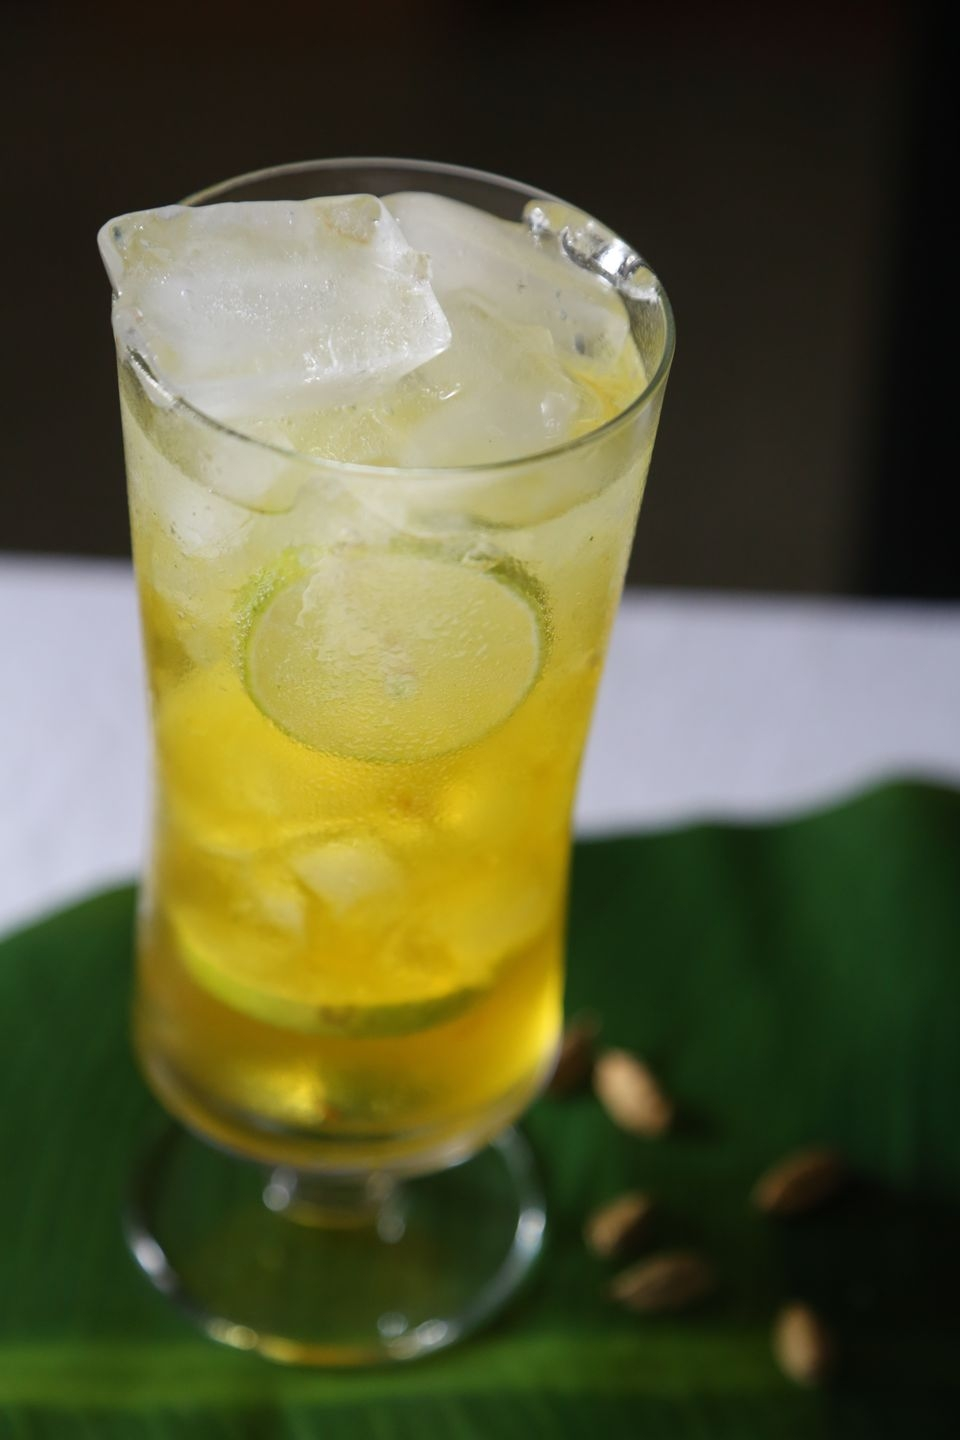 Shahi Kesari Limbo Soda: Limeade with Saffron and Cardamom